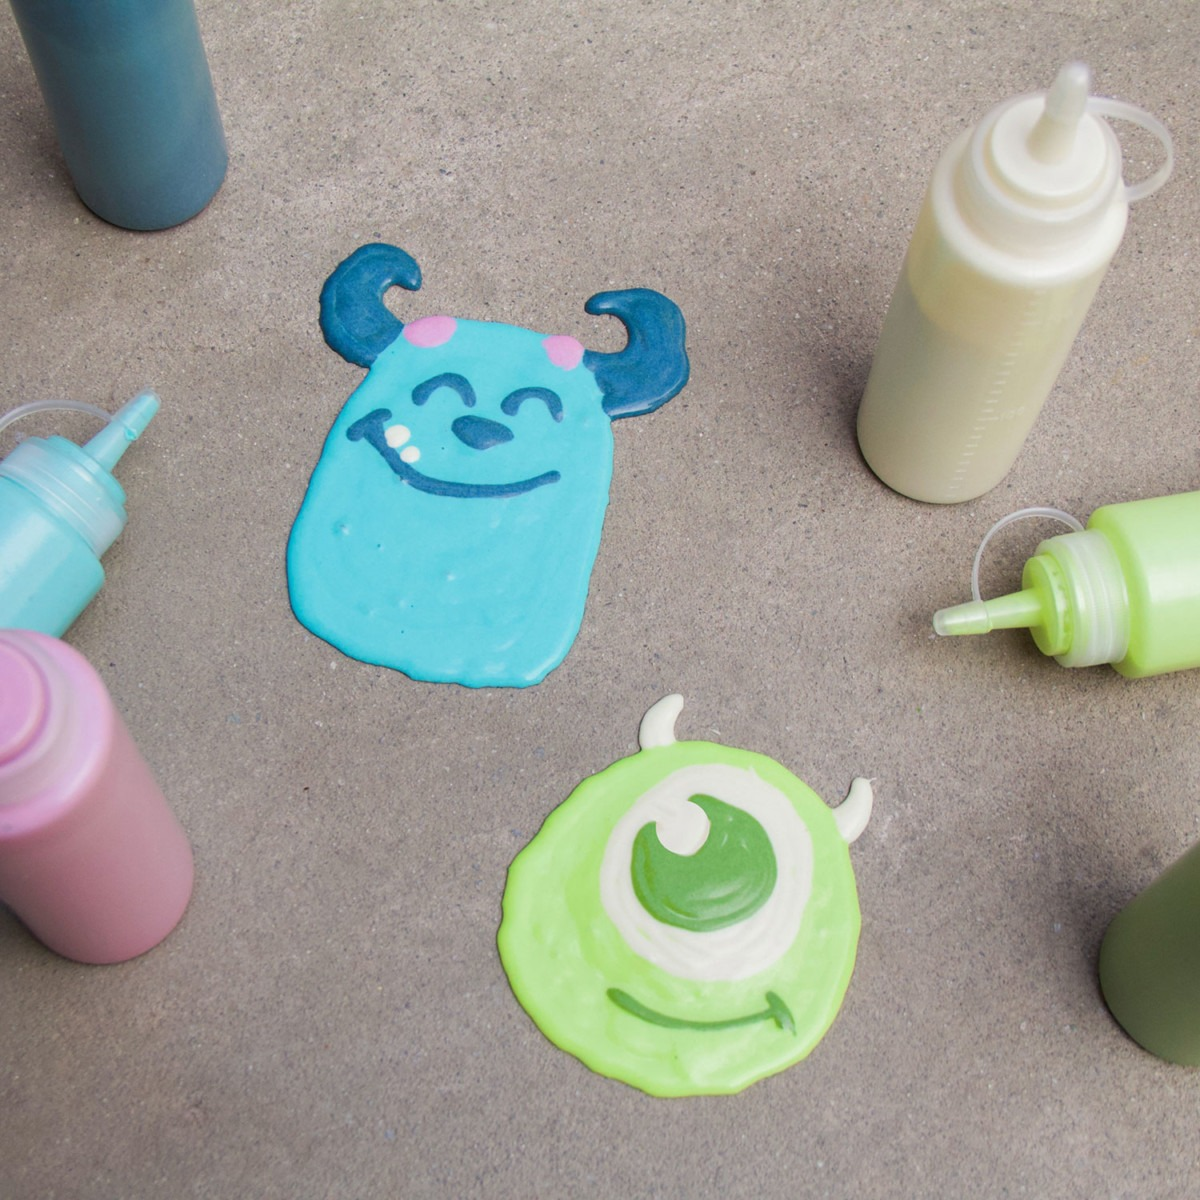 How to Make Your Own Mike & Sulley Sidewalk Art 3